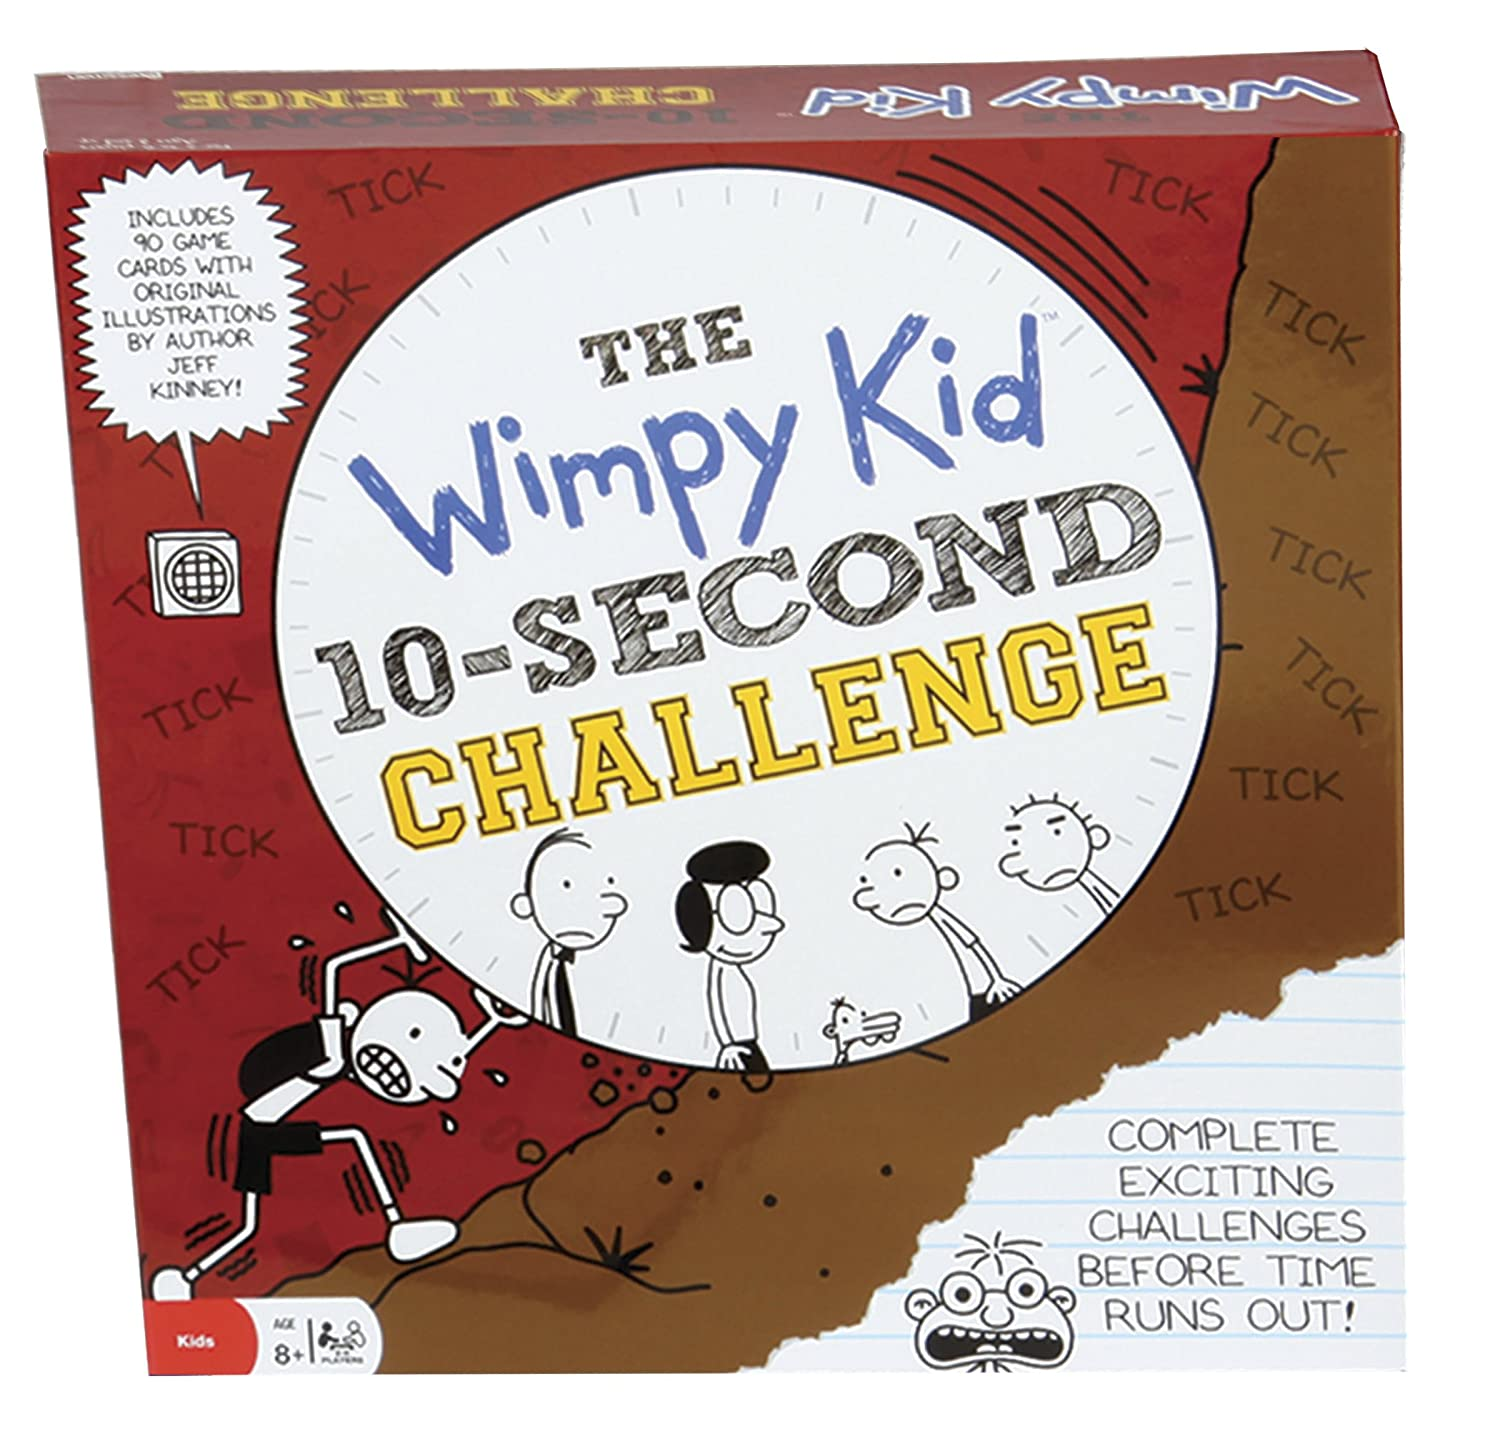 Amazon pressman toys diary of a wimpy kid 10 second challenge amazon pressman toys diary of a wimpy kid 10 second challenge toys games solutioingenieria